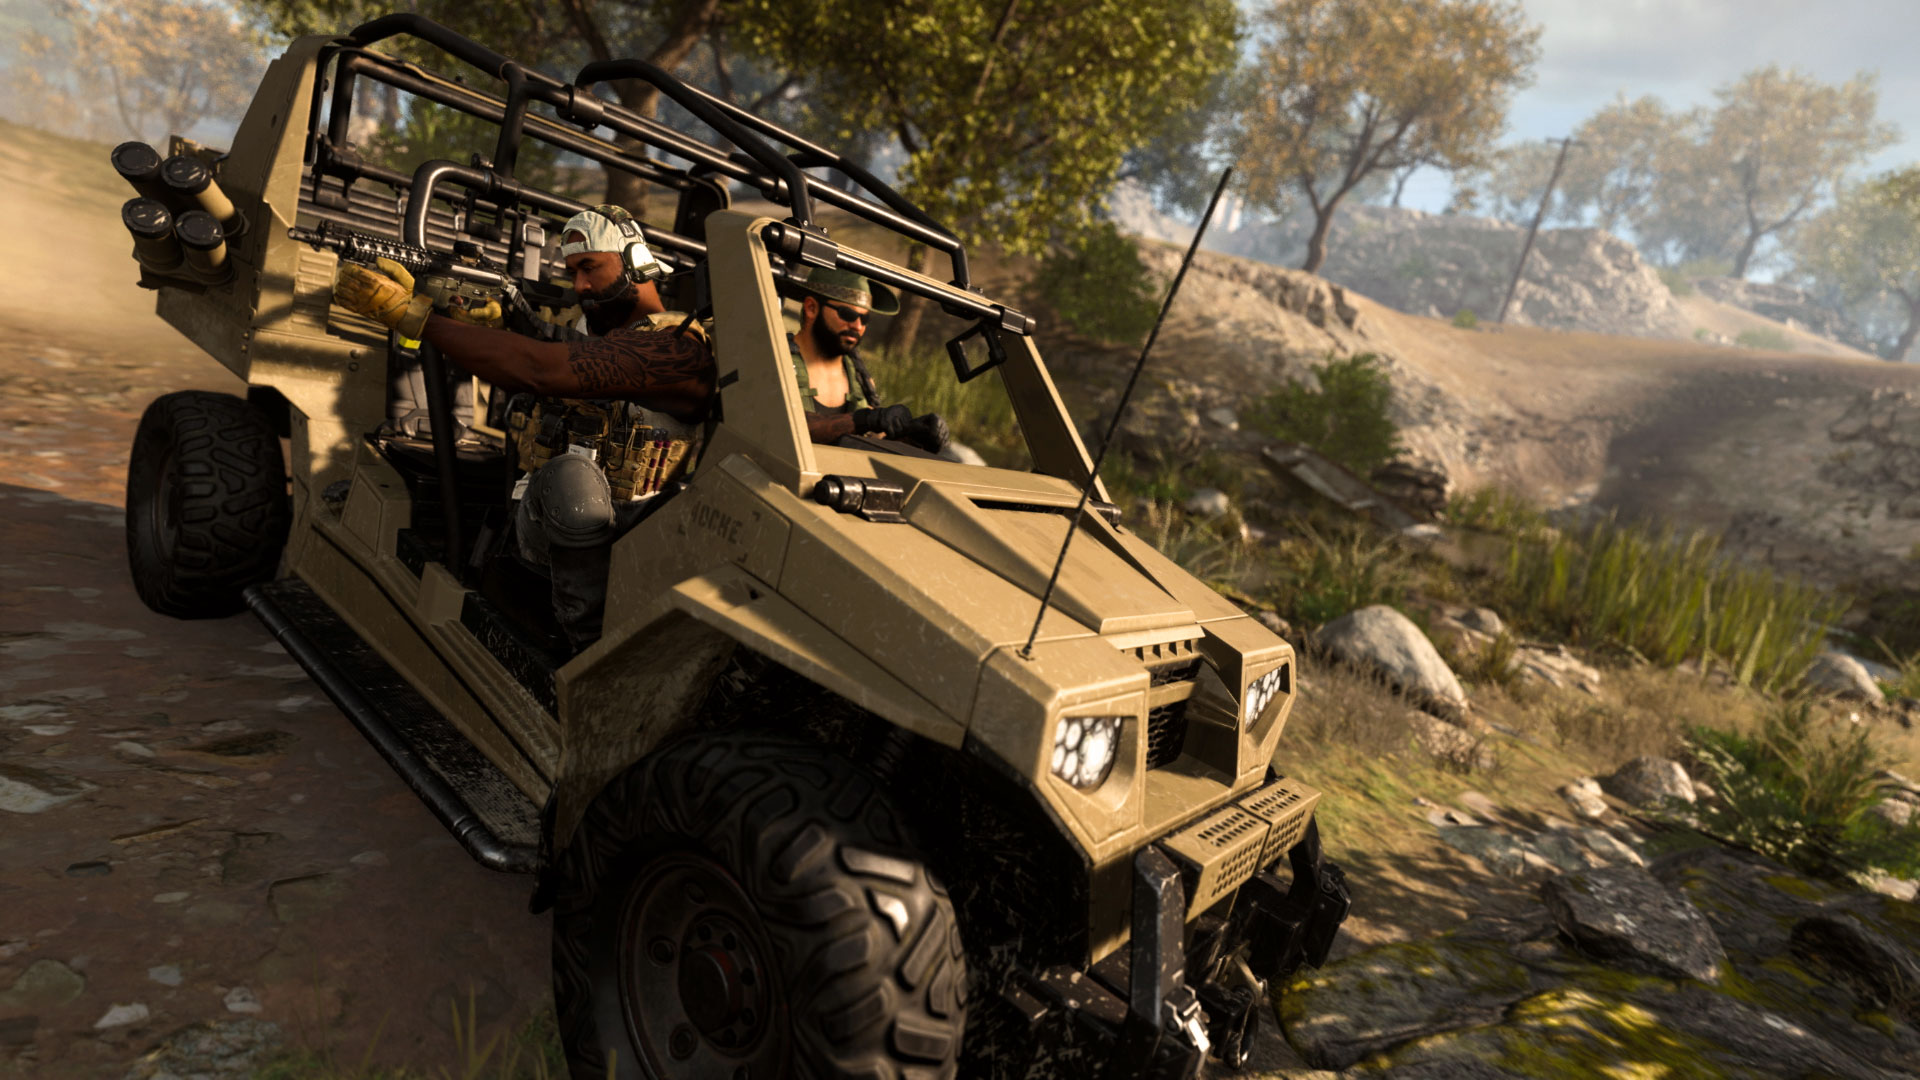 Call of Duty Modern Warfare co-op tips: Vehicles